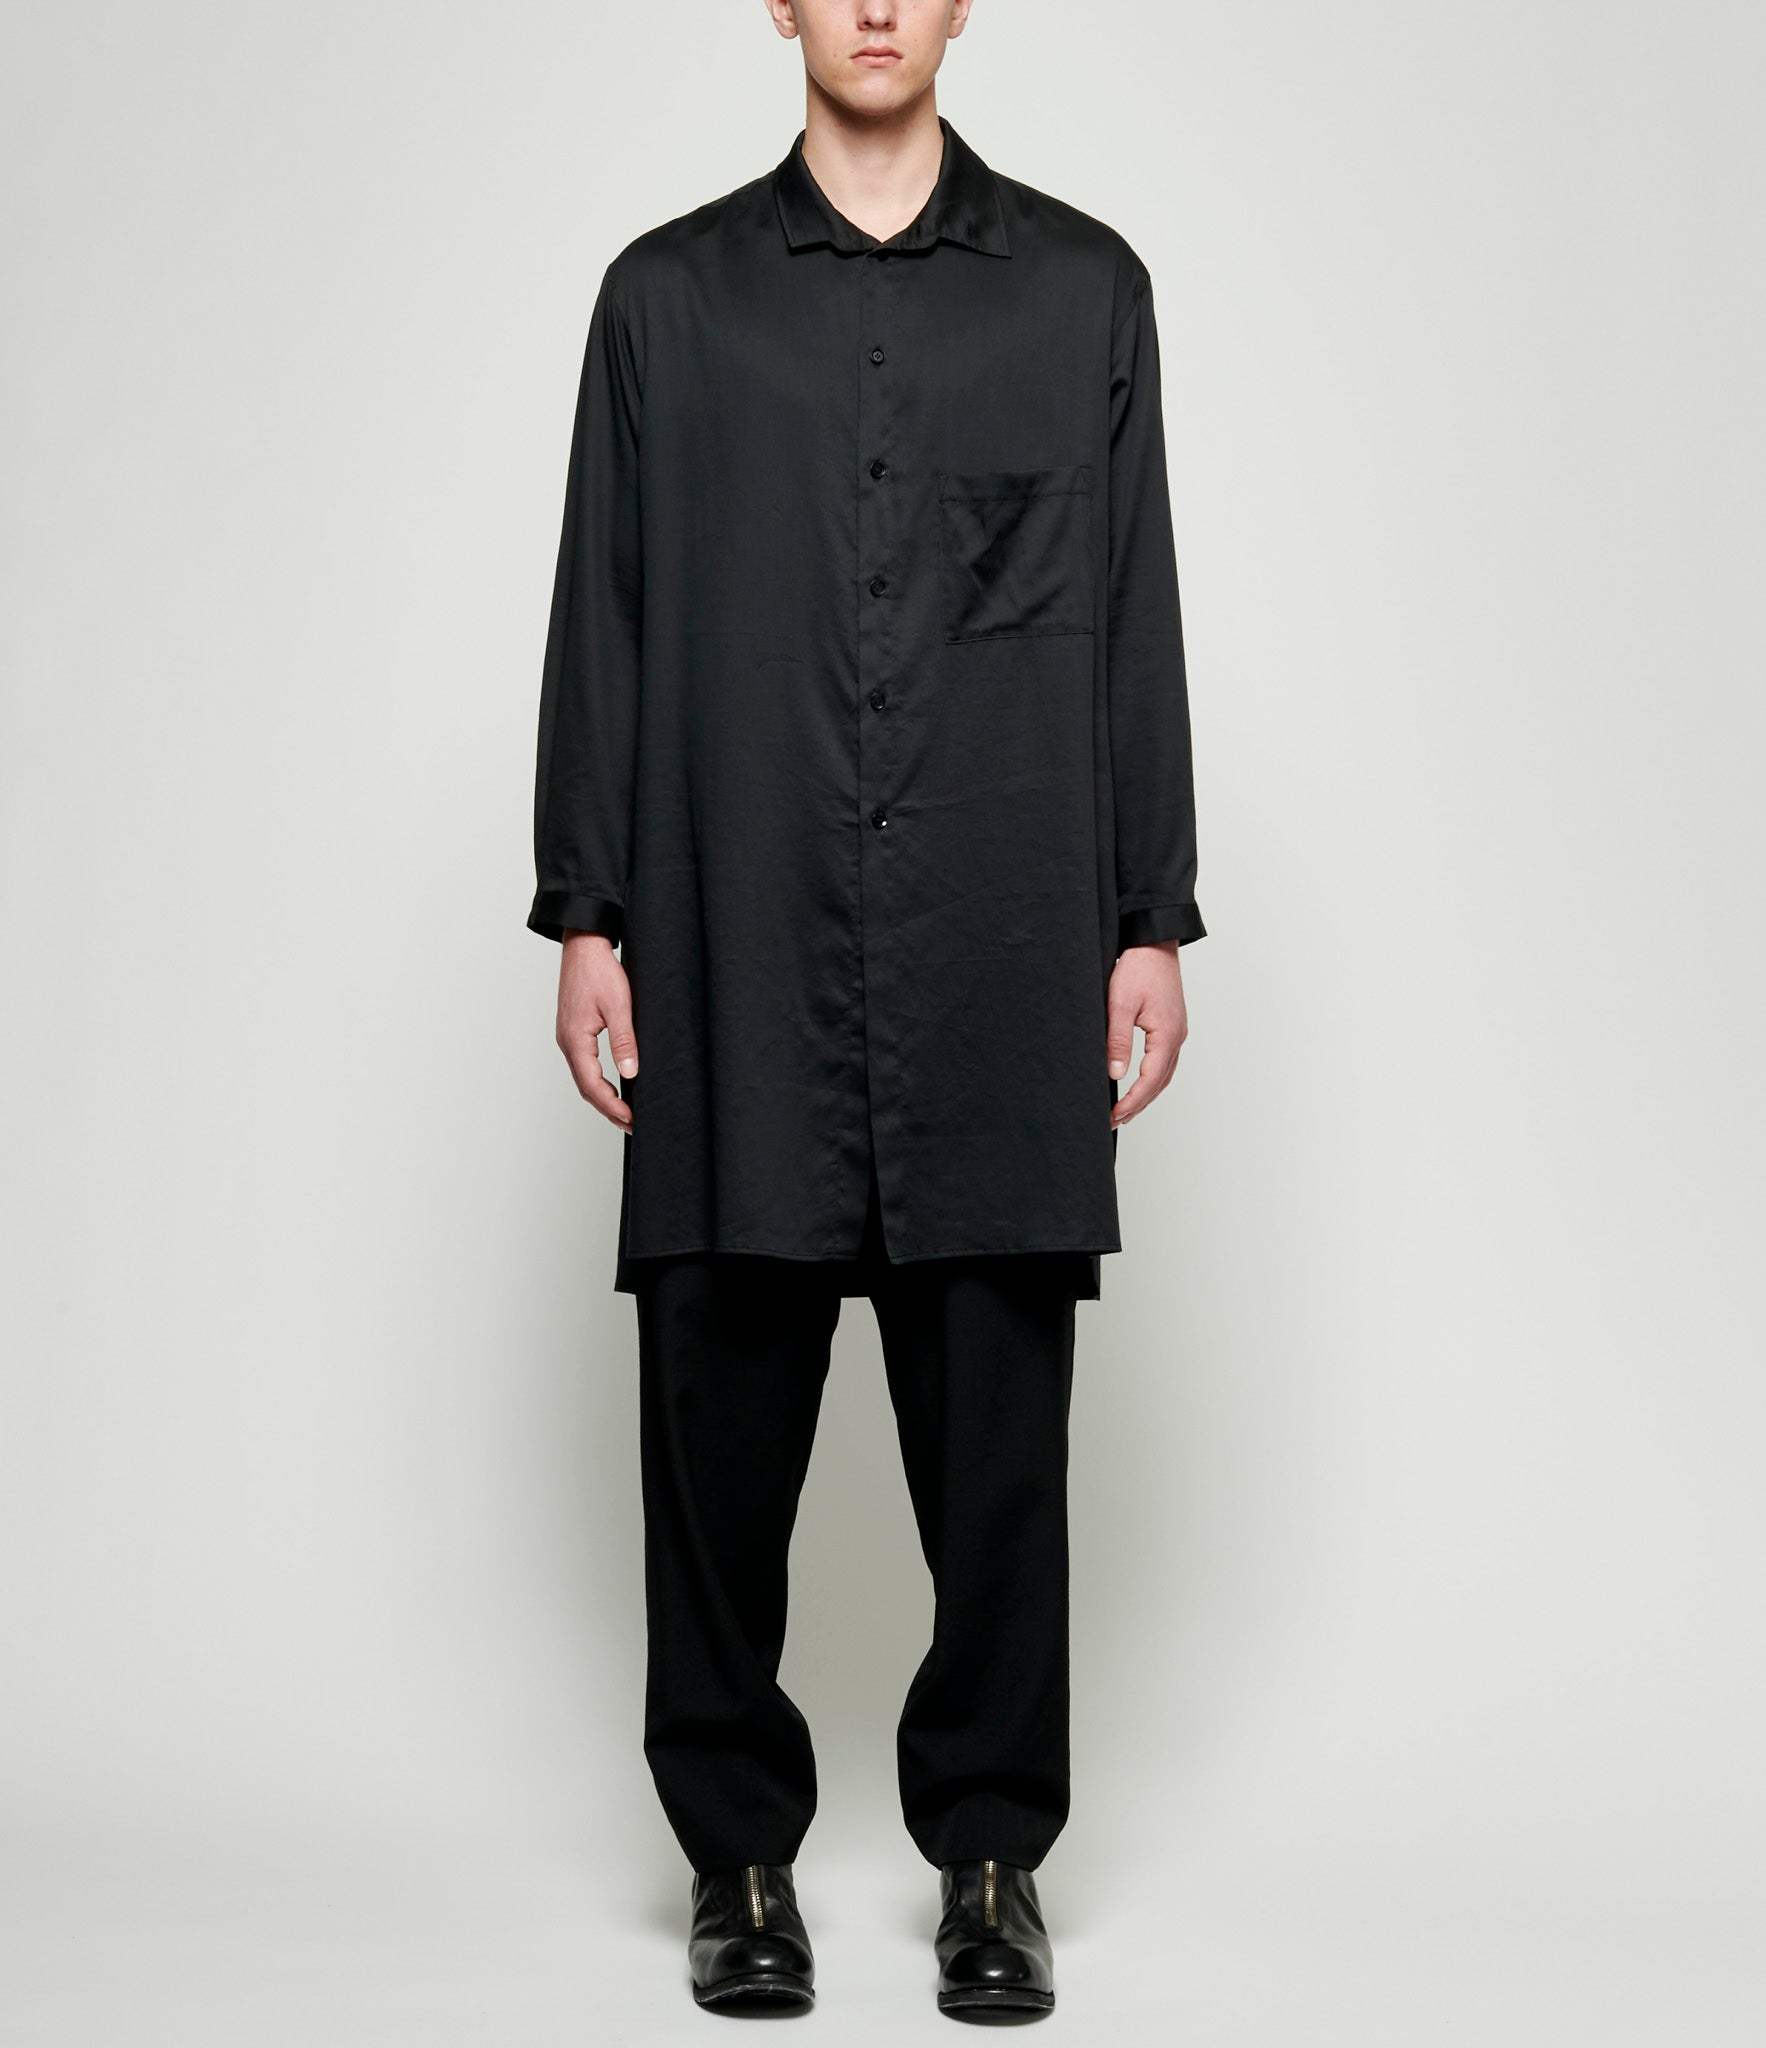 Yohji Yamamoto Asymmetrical Designed Clear Number Graphic Shirt